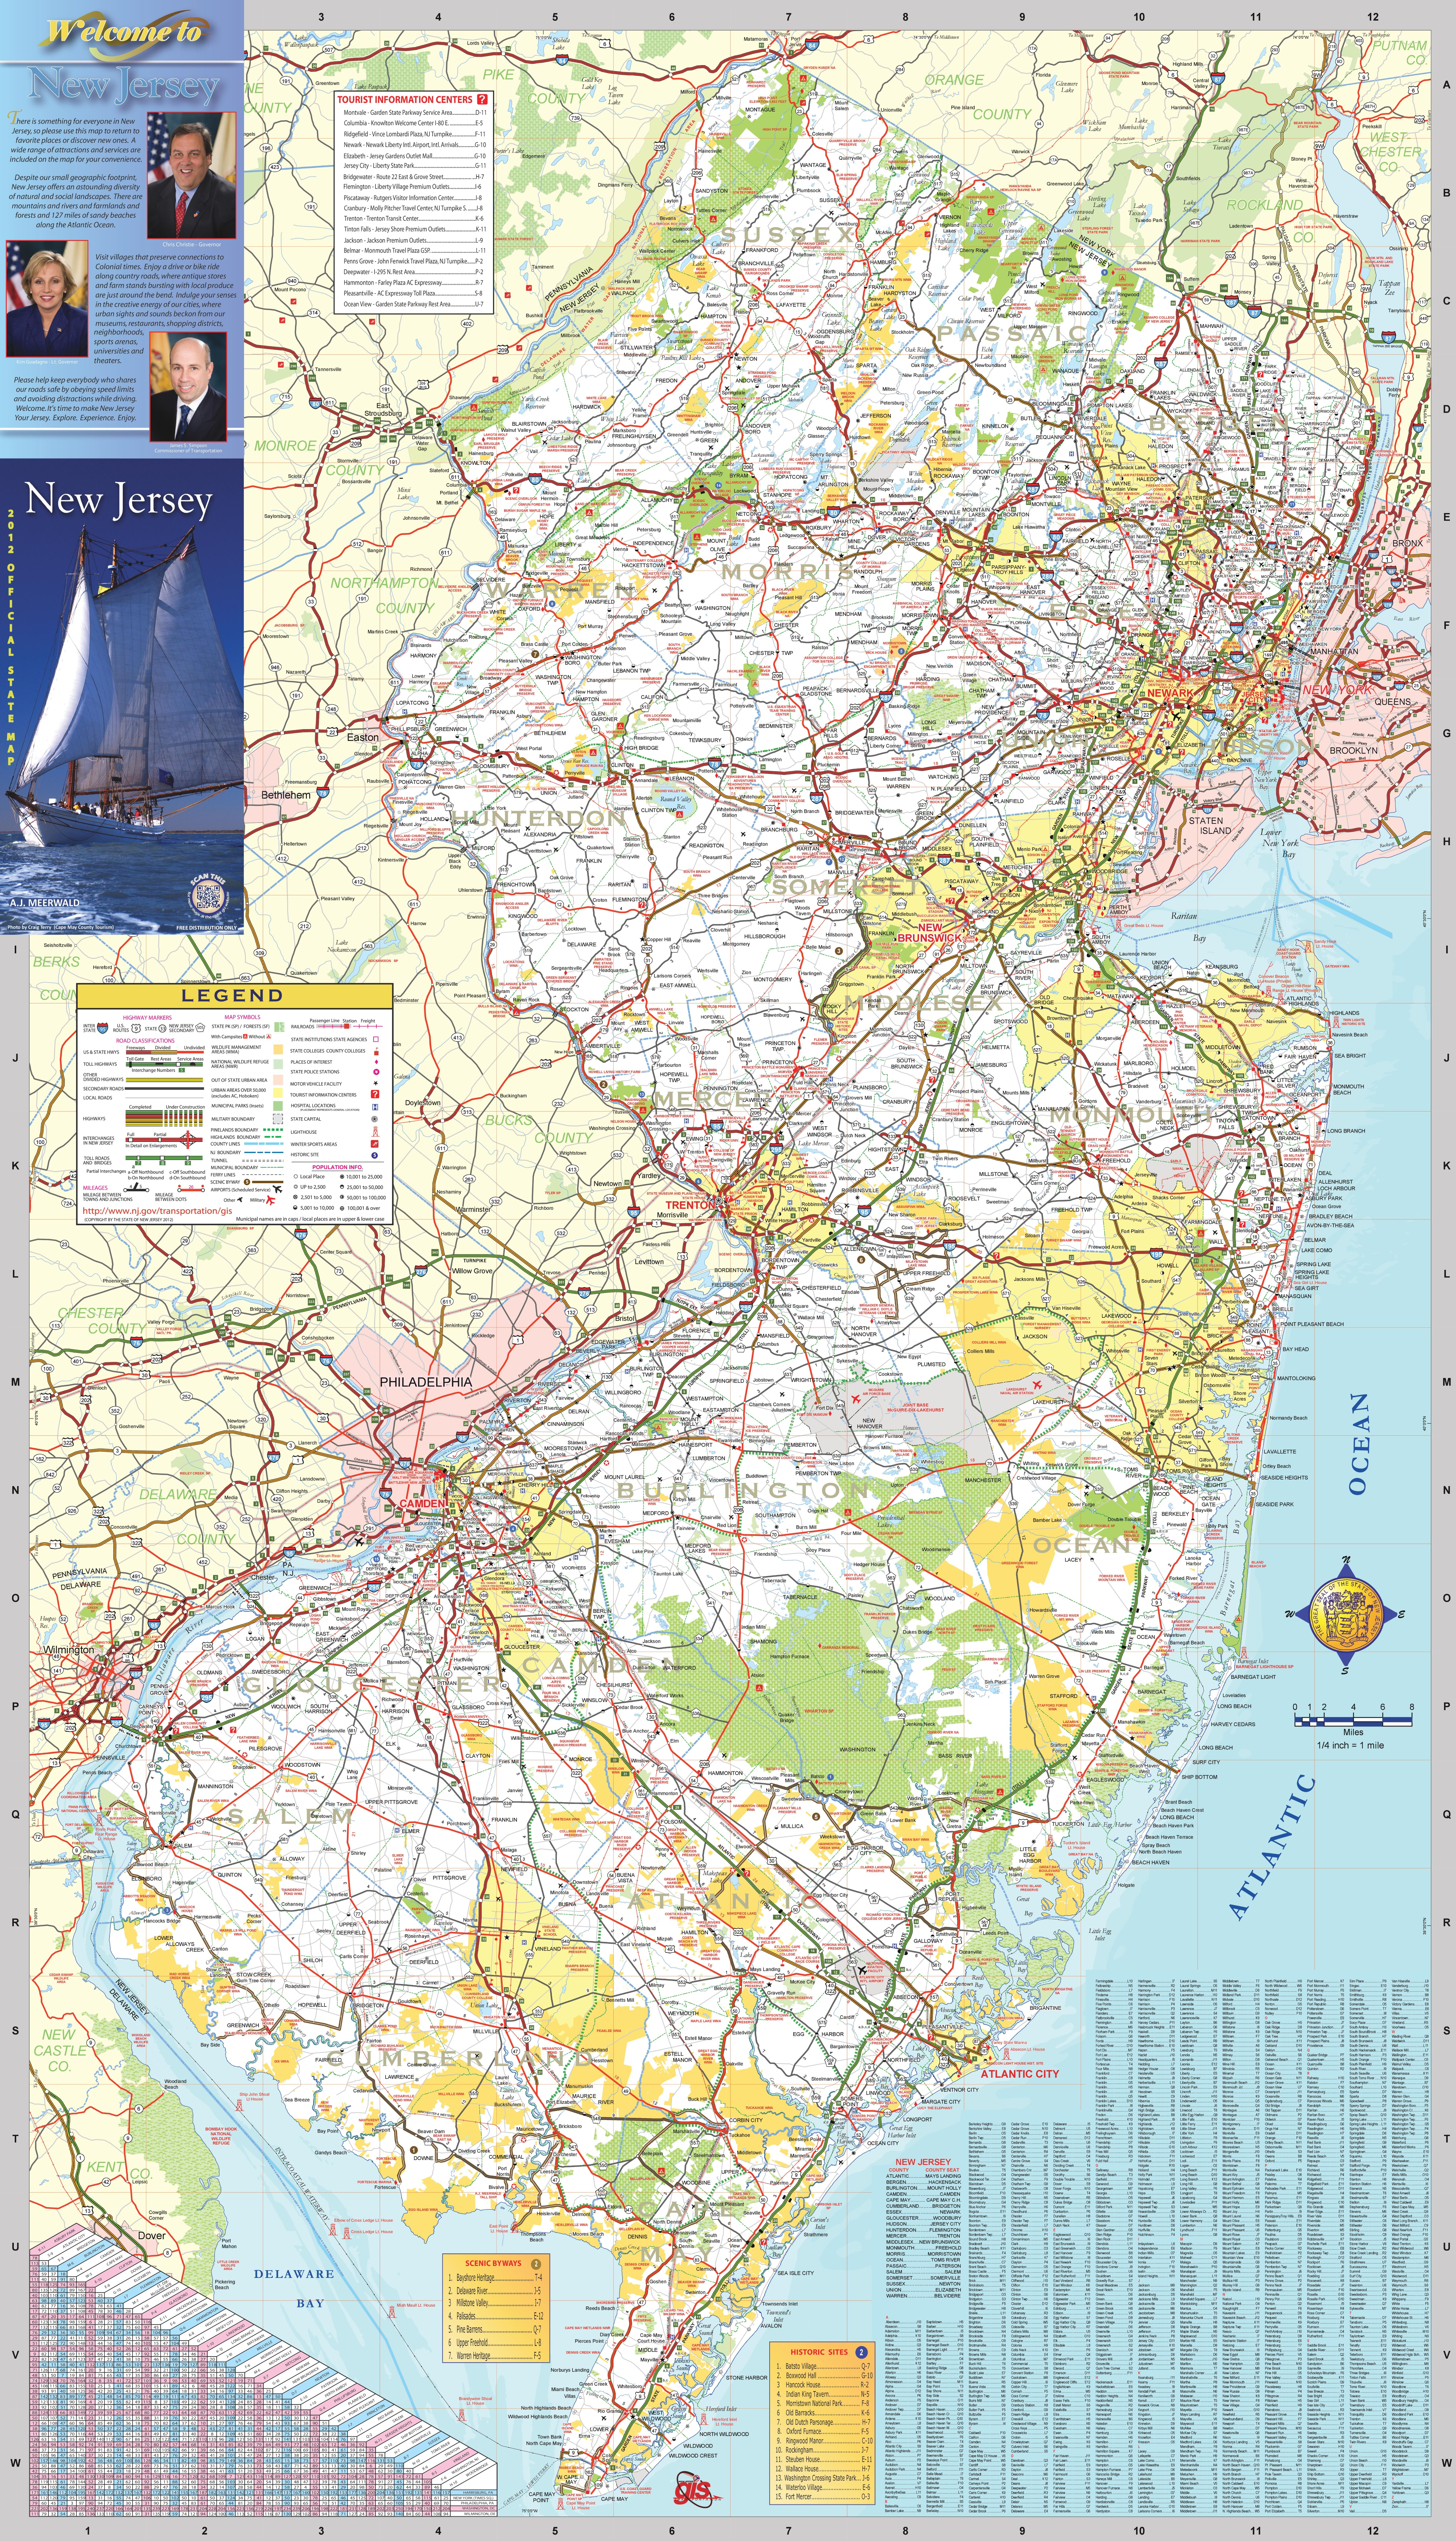 Nj Map Of Towns Large detailed tourist map of New Jersey with cities and towns